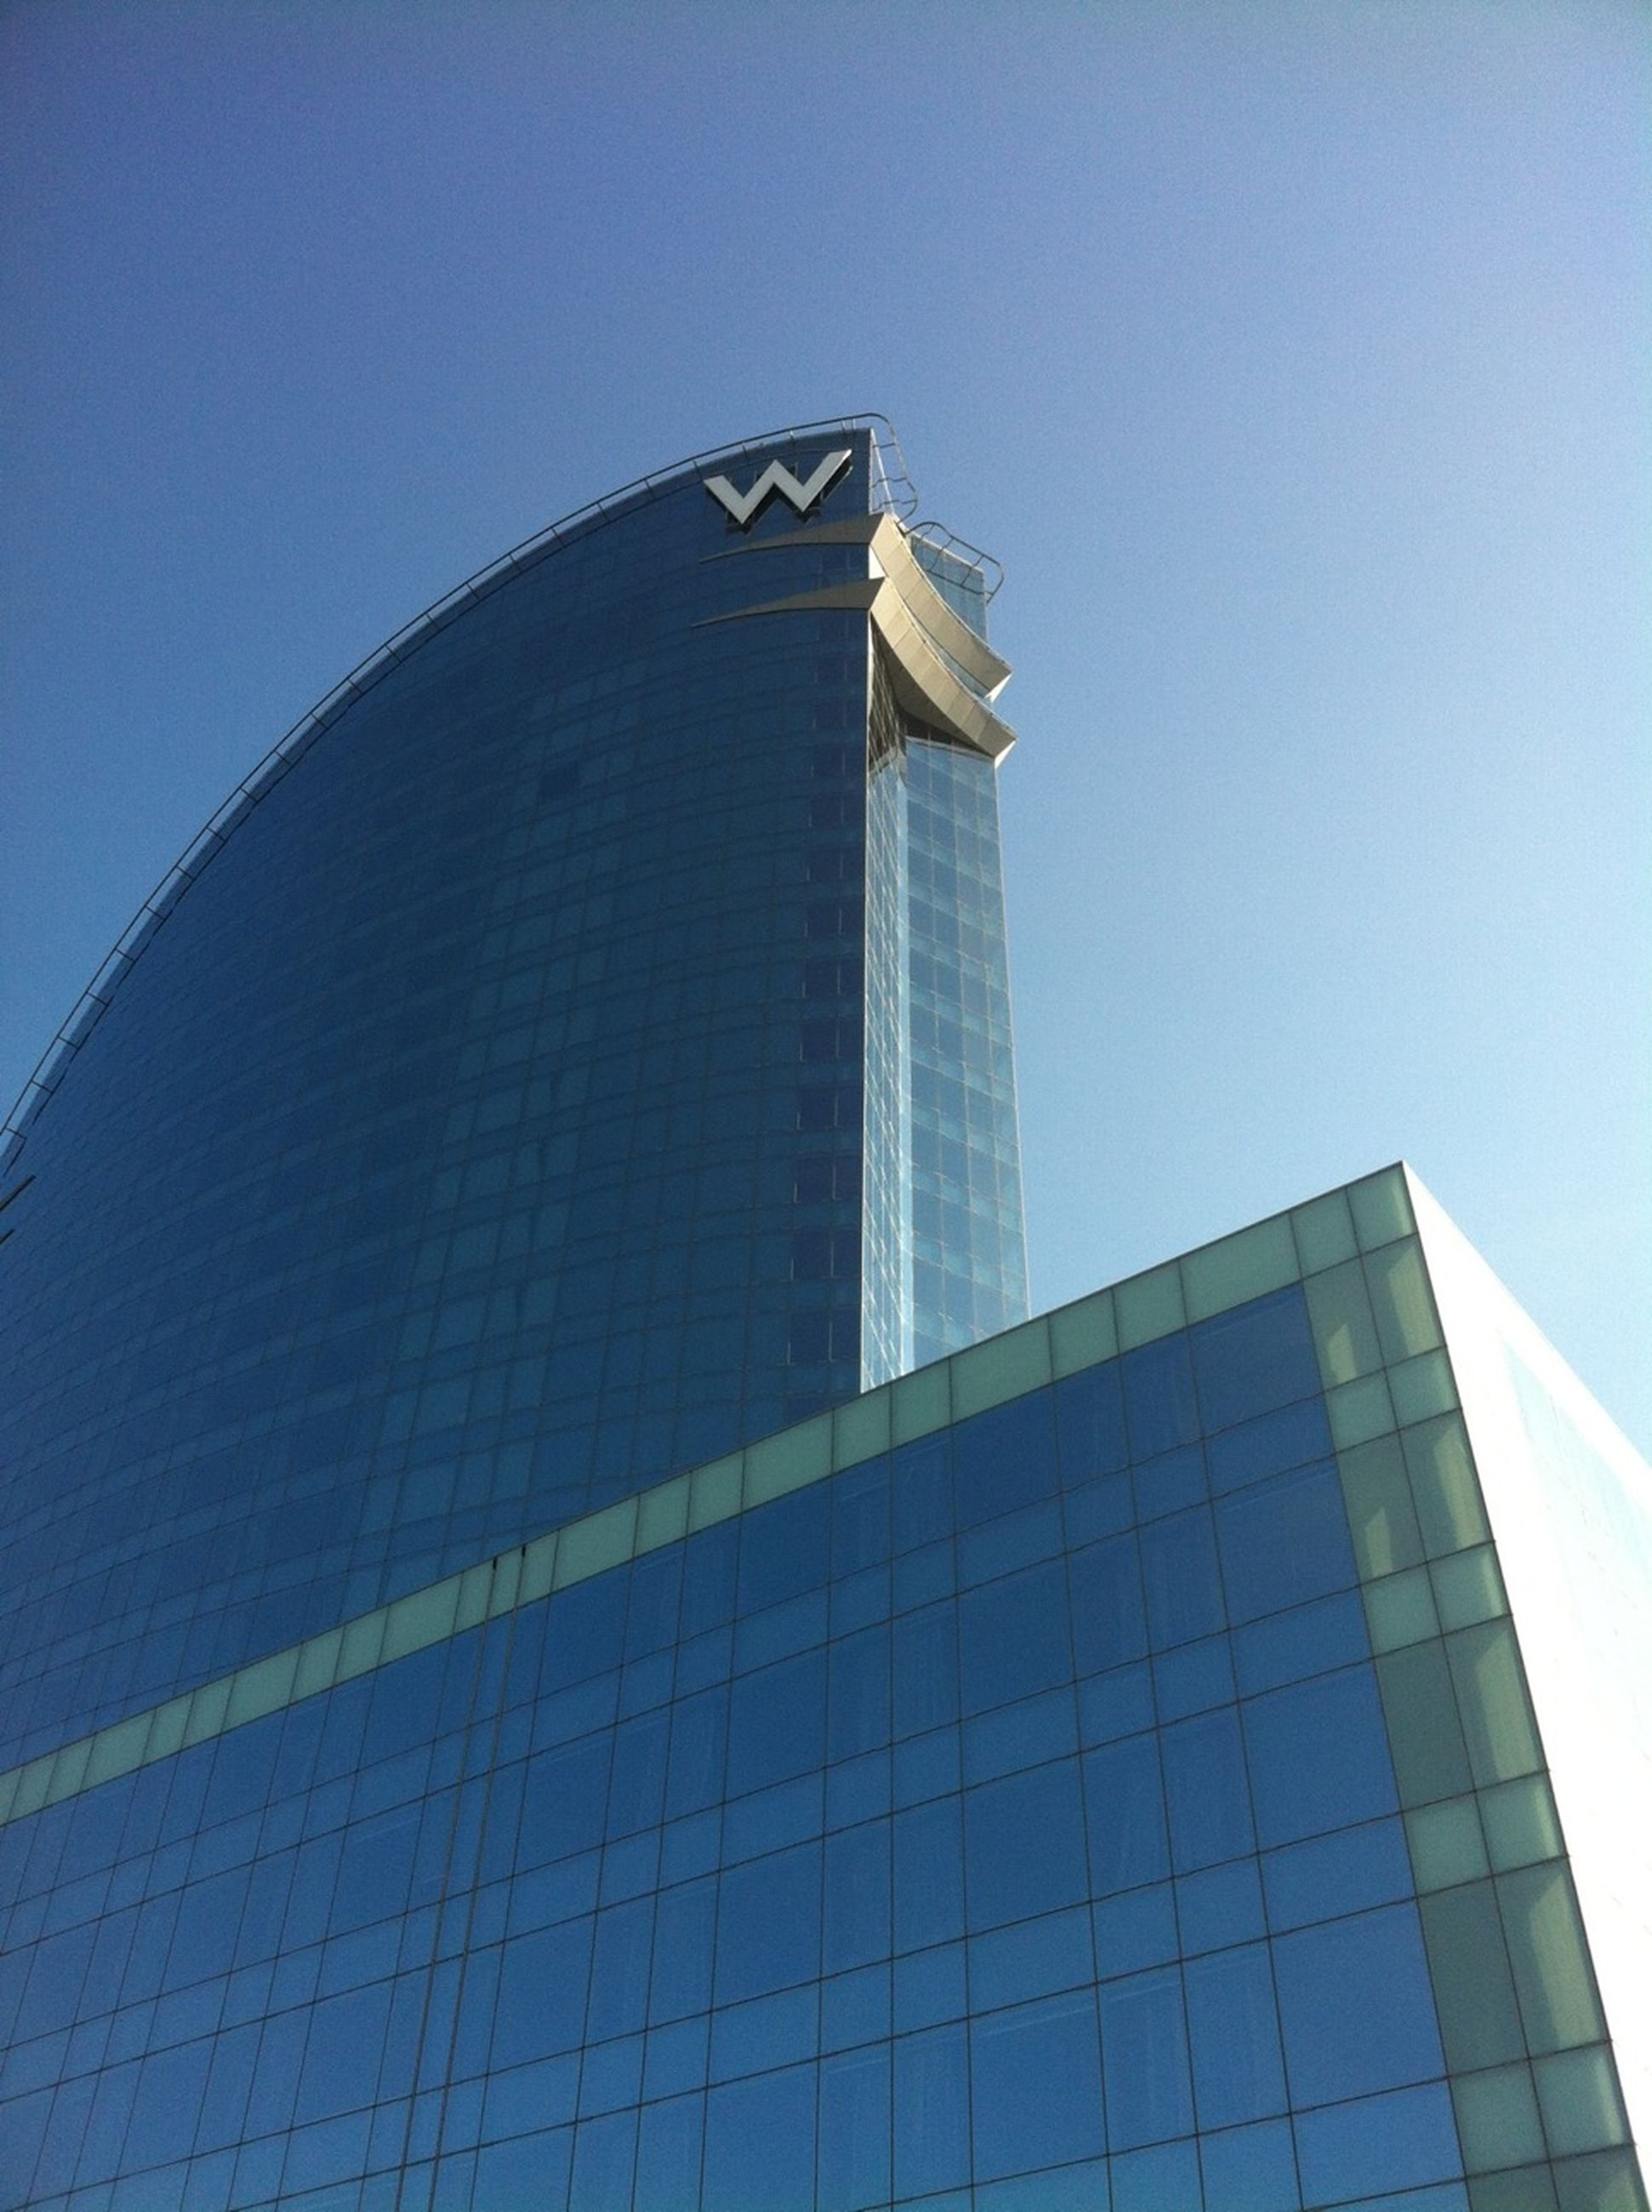 architecture, built structure, building exterior, low angle view, clear sky, modern, blue, city, tower, office building, tall - high, skyscraper, glass - material, reflection, famous place, capital cities, building, day, sky, travel destinations